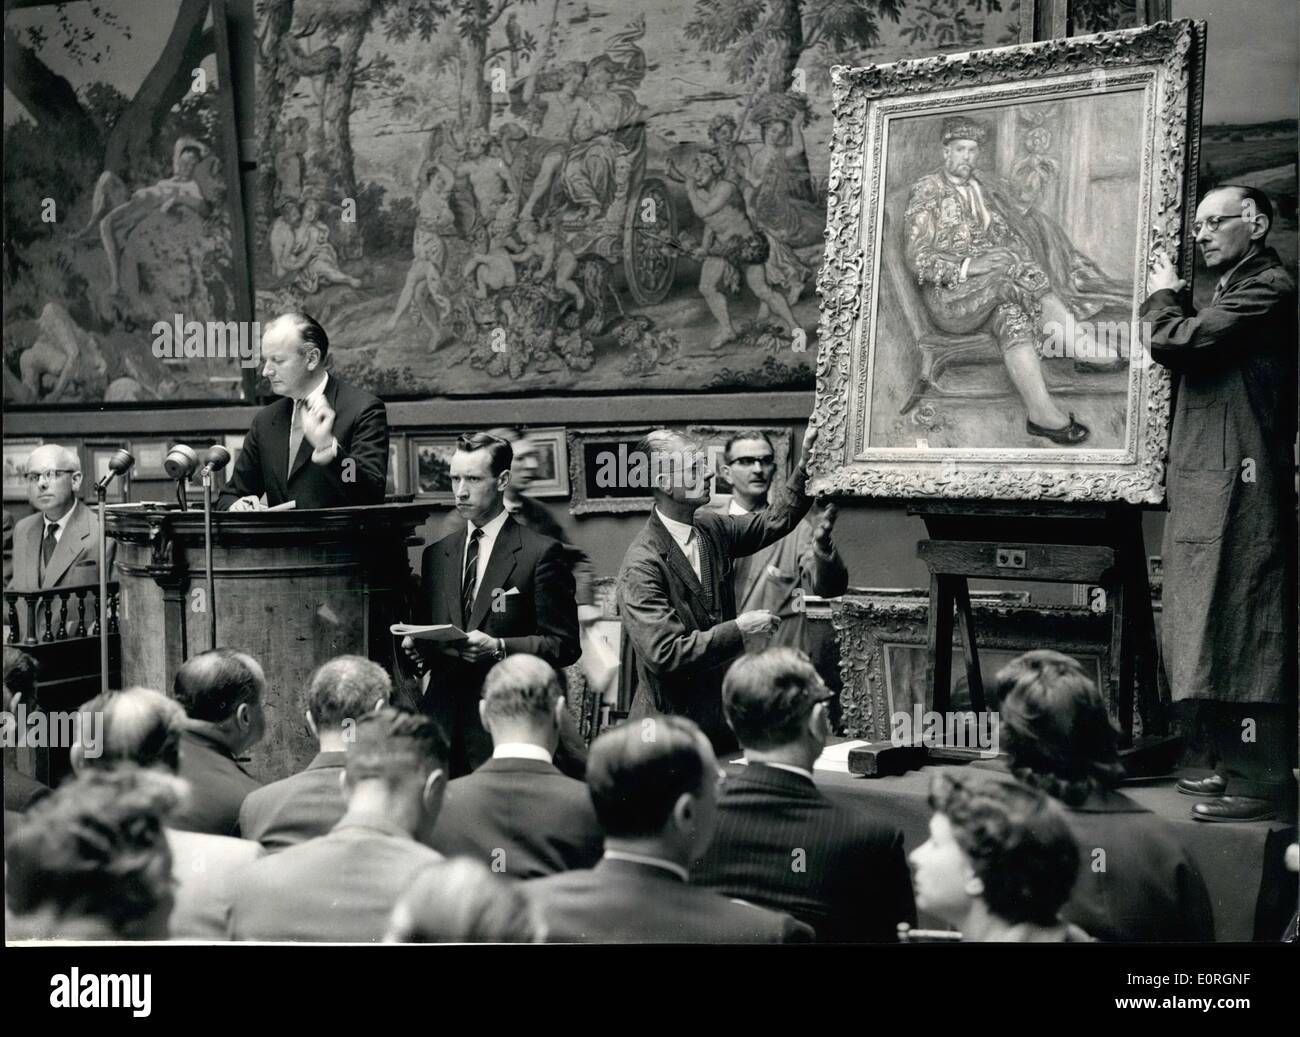 Jul. 07, 1959 - Painting from Chrystler Collection sold in London Remoir brings 22,000; A number of paintings from the fabulous collection belonging to American millionaire Water P. Chrystler Jnr. were put up for auction at Sotheyby's this morning. Photo Shows Scene during the sale of ''Portrati D'Ambroise Vollard on Toreador'' by Pierge Laguets - Stock Image